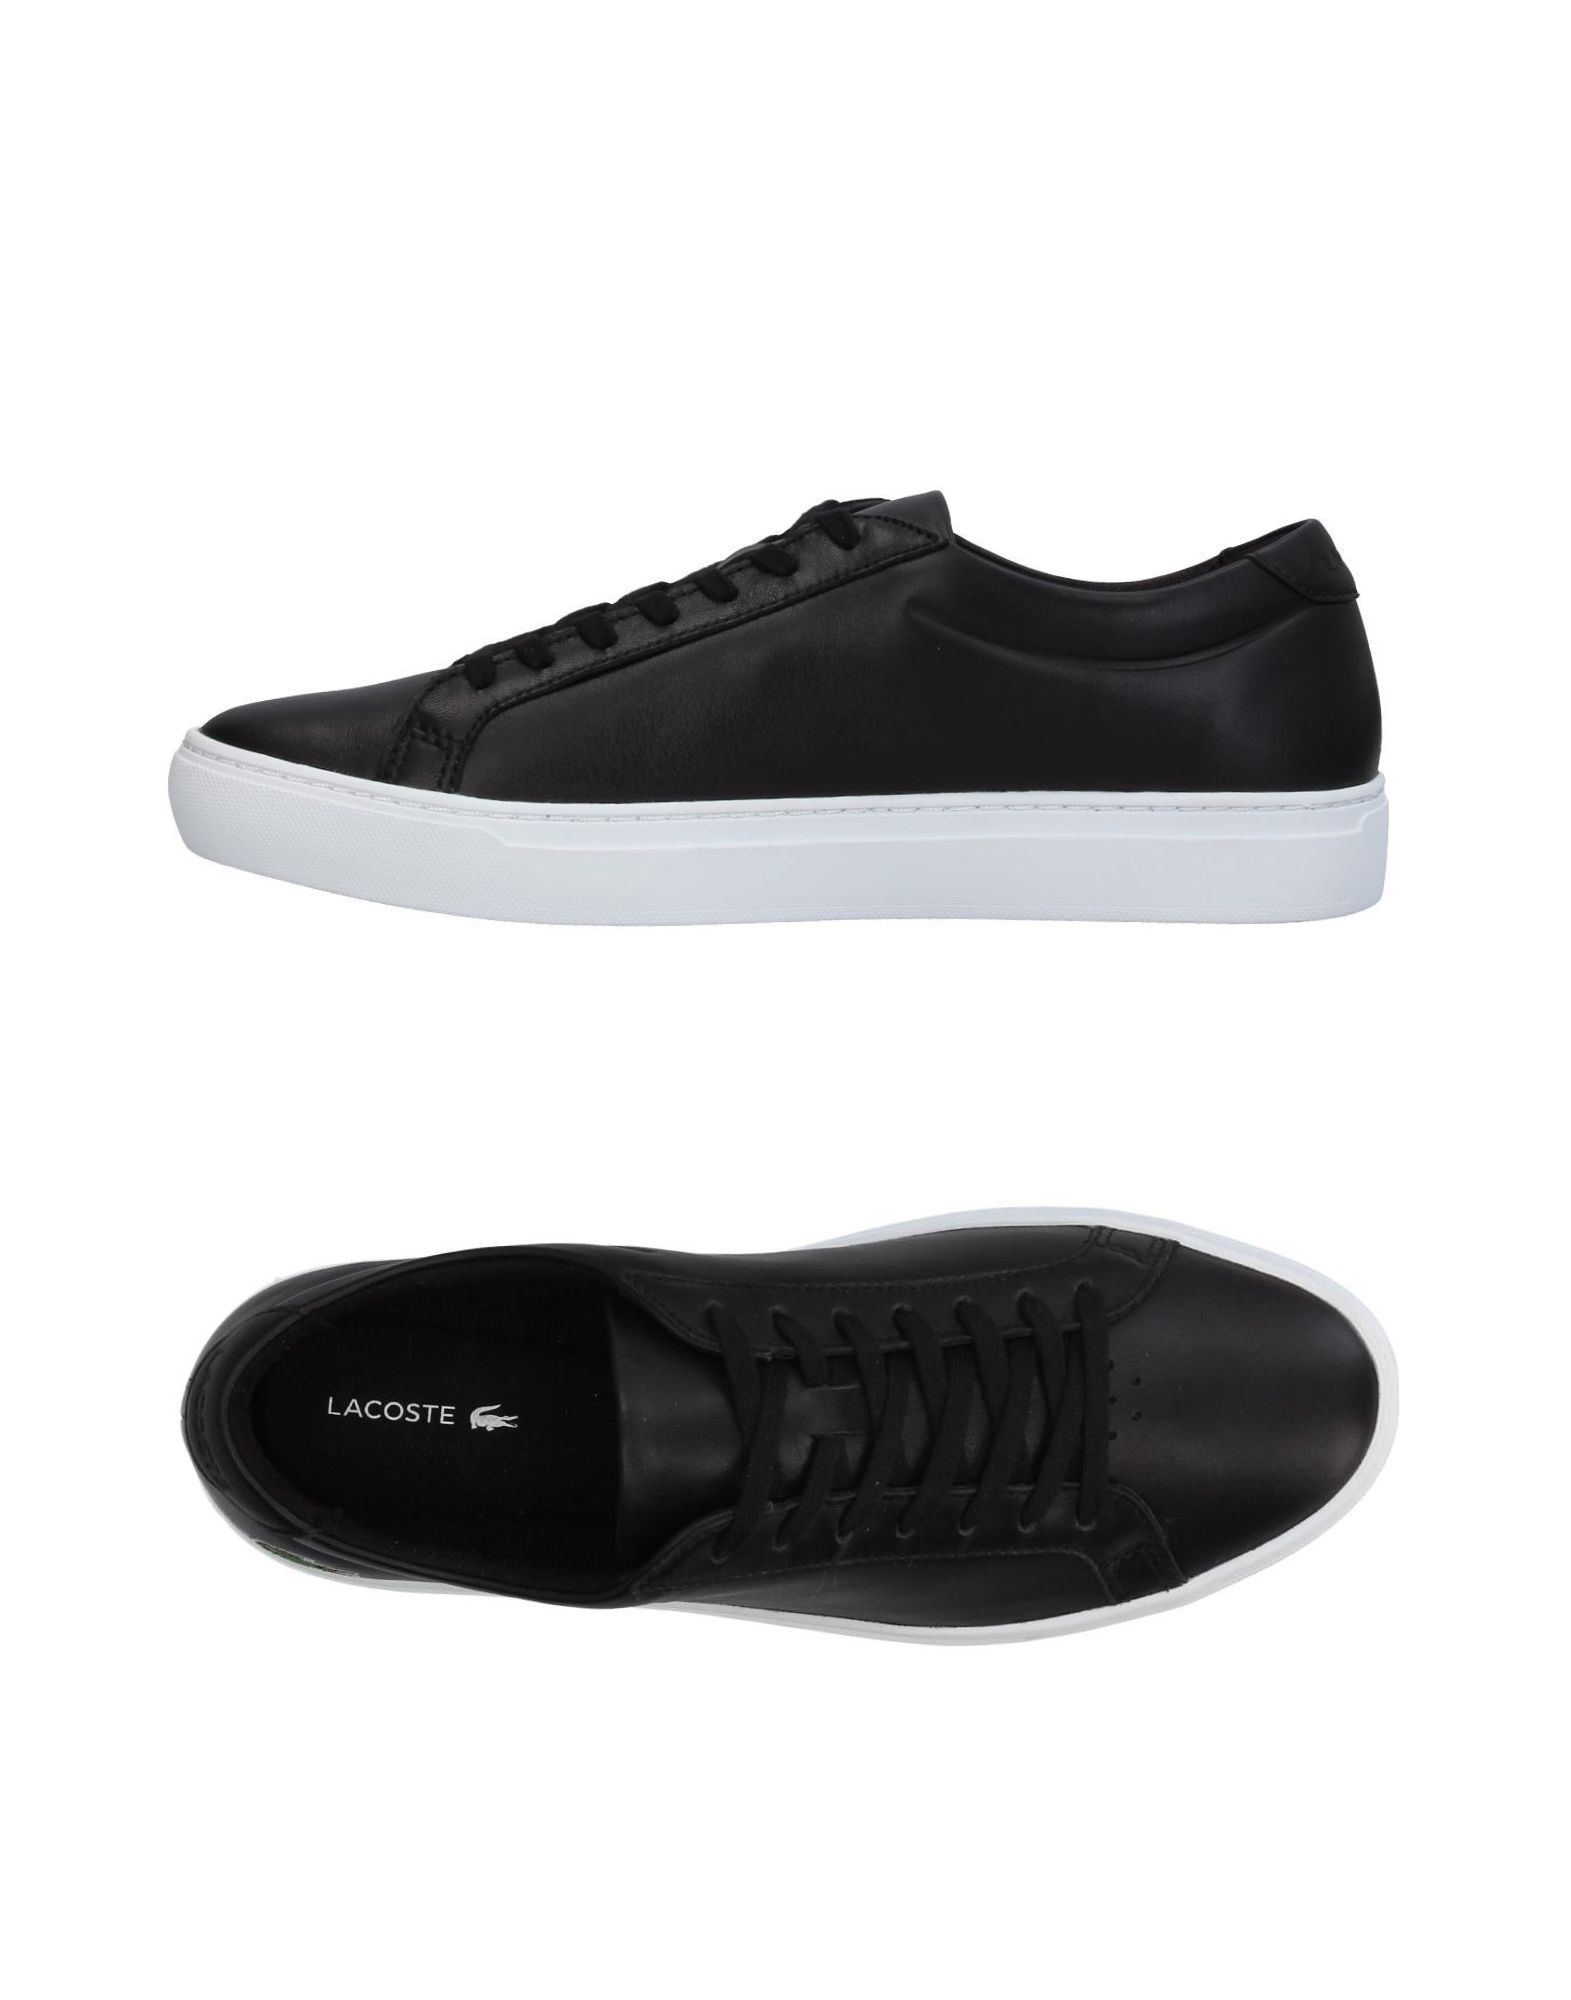 Sneakers Lacoste Homme - Sneakers Lacoste sur